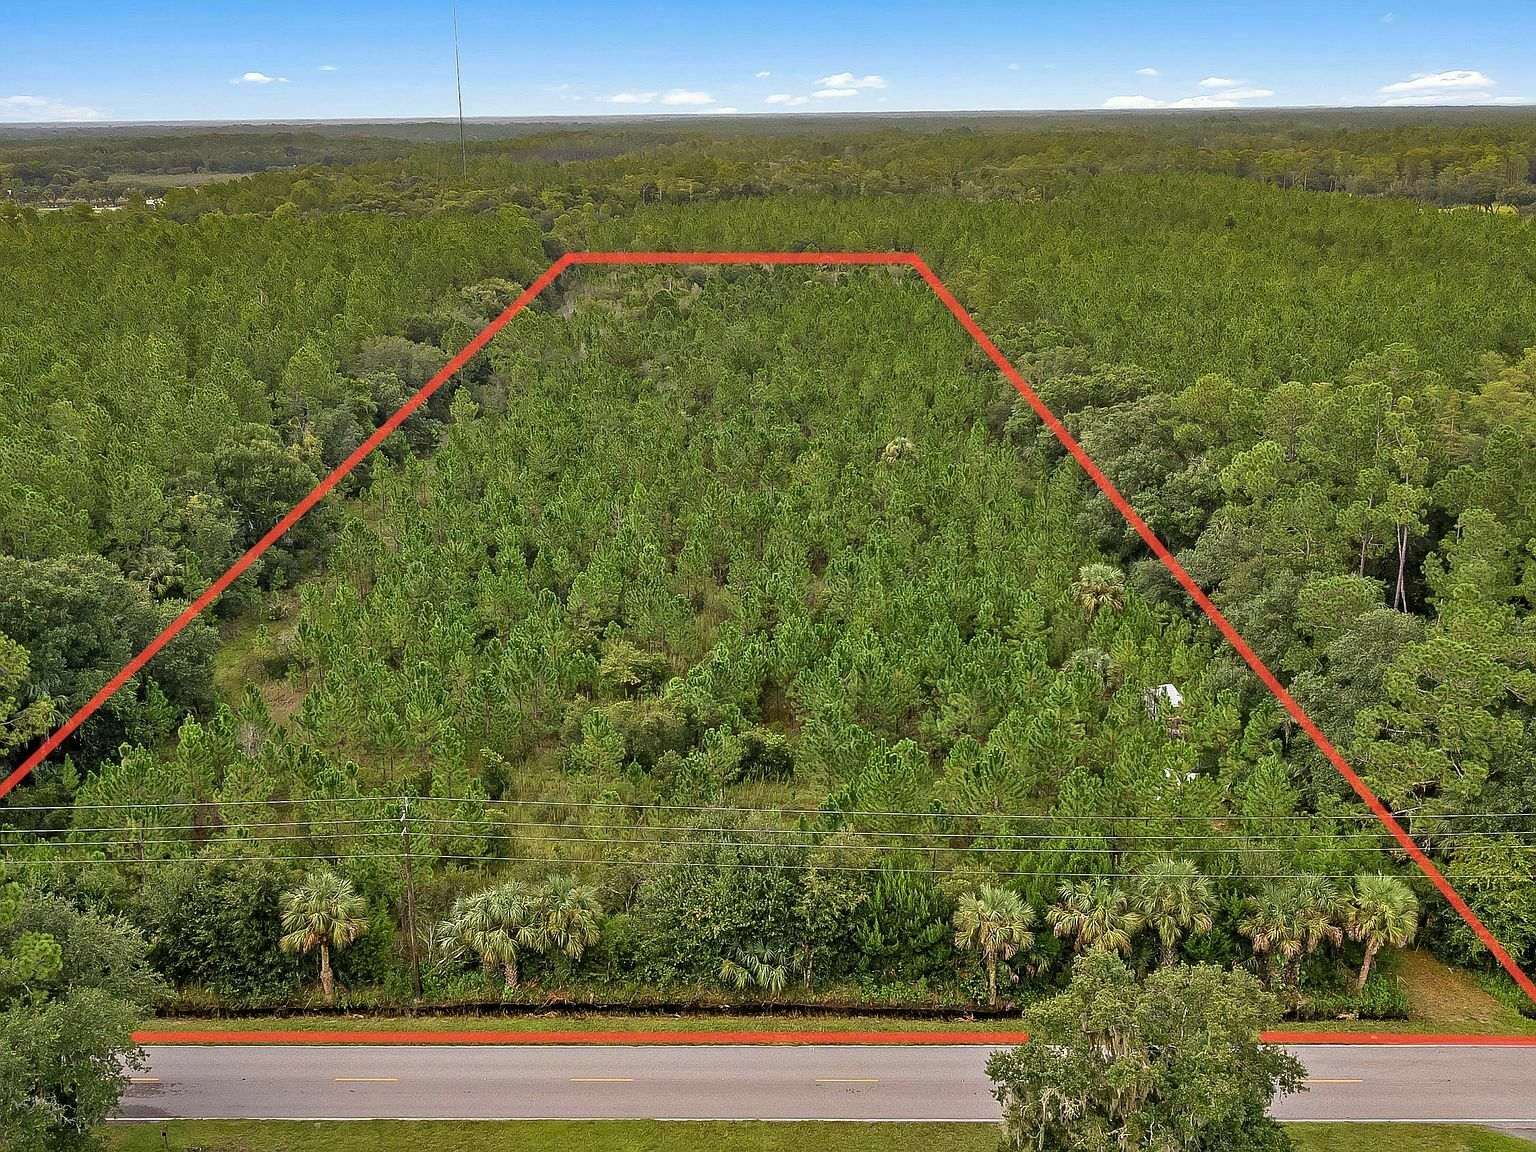 FLORIDA TAX LIEN CERTIFICATE FOR LAND 9.87 AC MINERAL RIGHTS ONLY SANTA ROSA  - $0.99